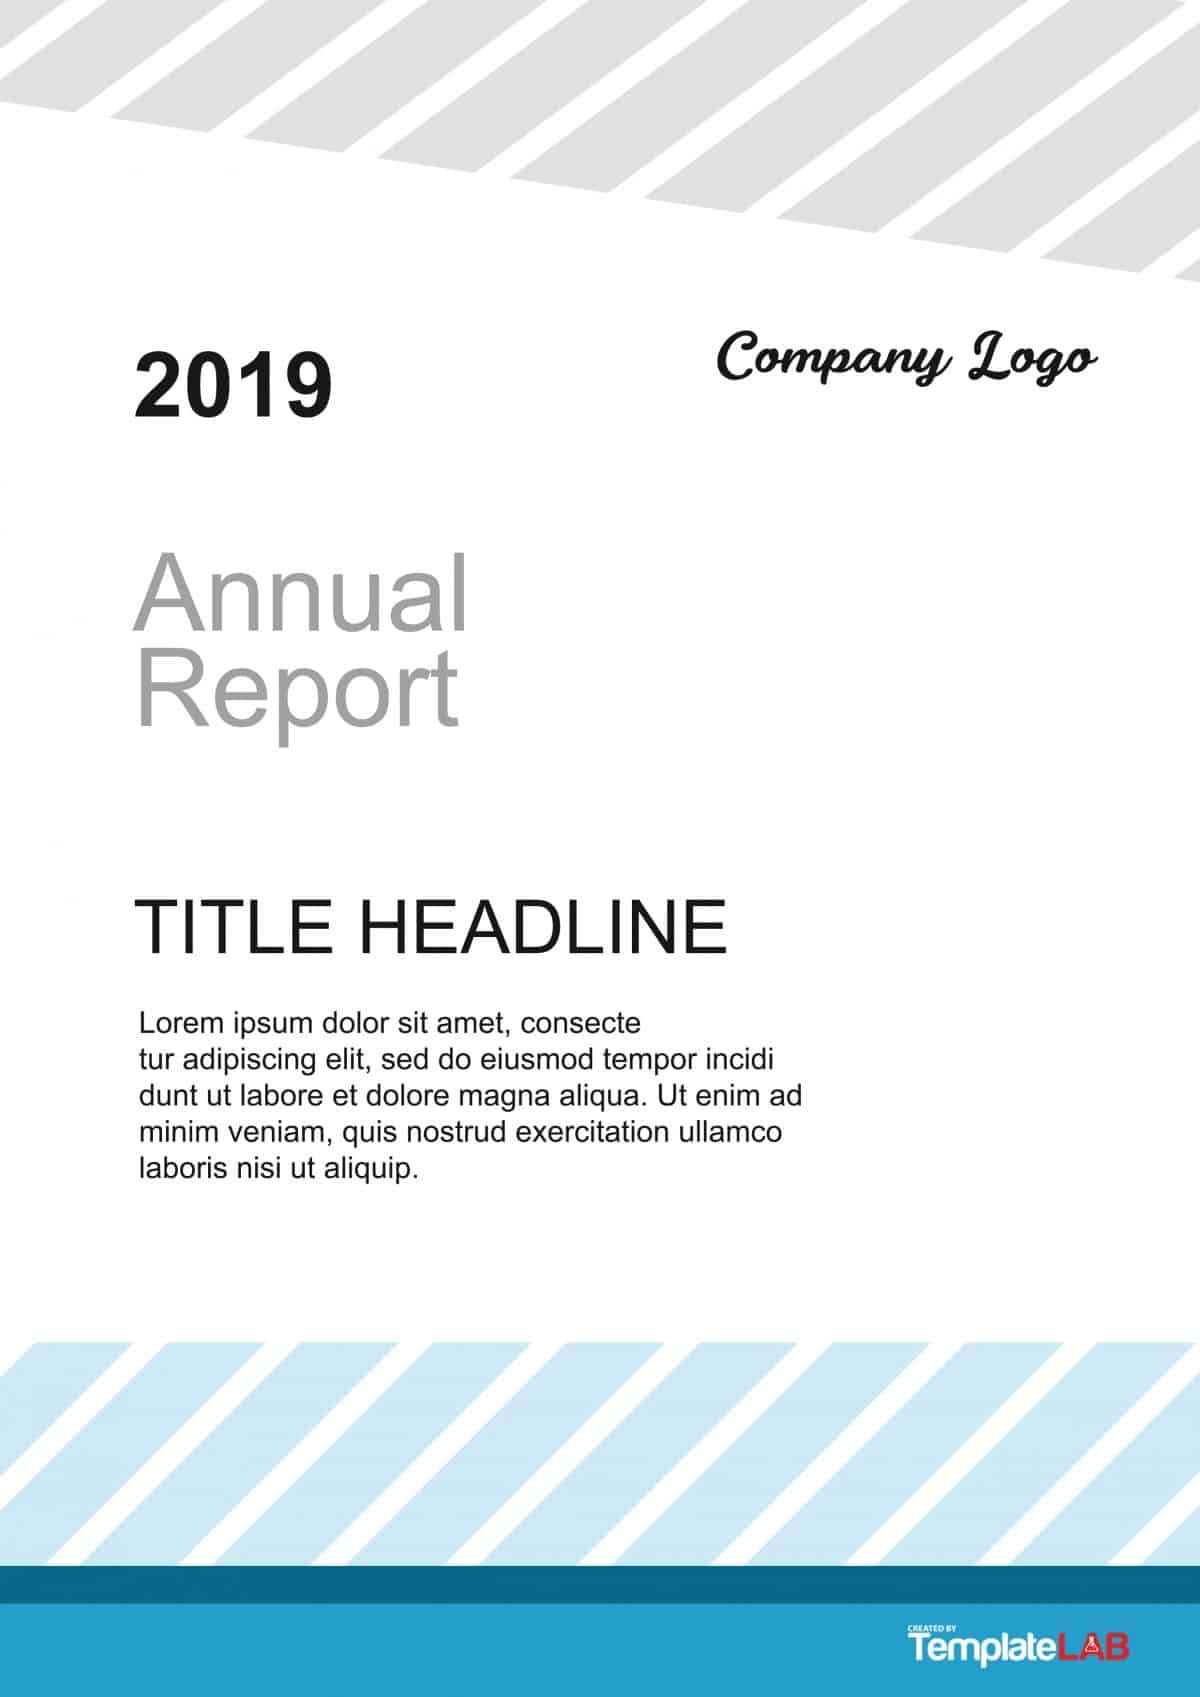 Amazing Cover Page Templates Word  Psd ᐅ Template Lab Inside Cover Page For Report Template